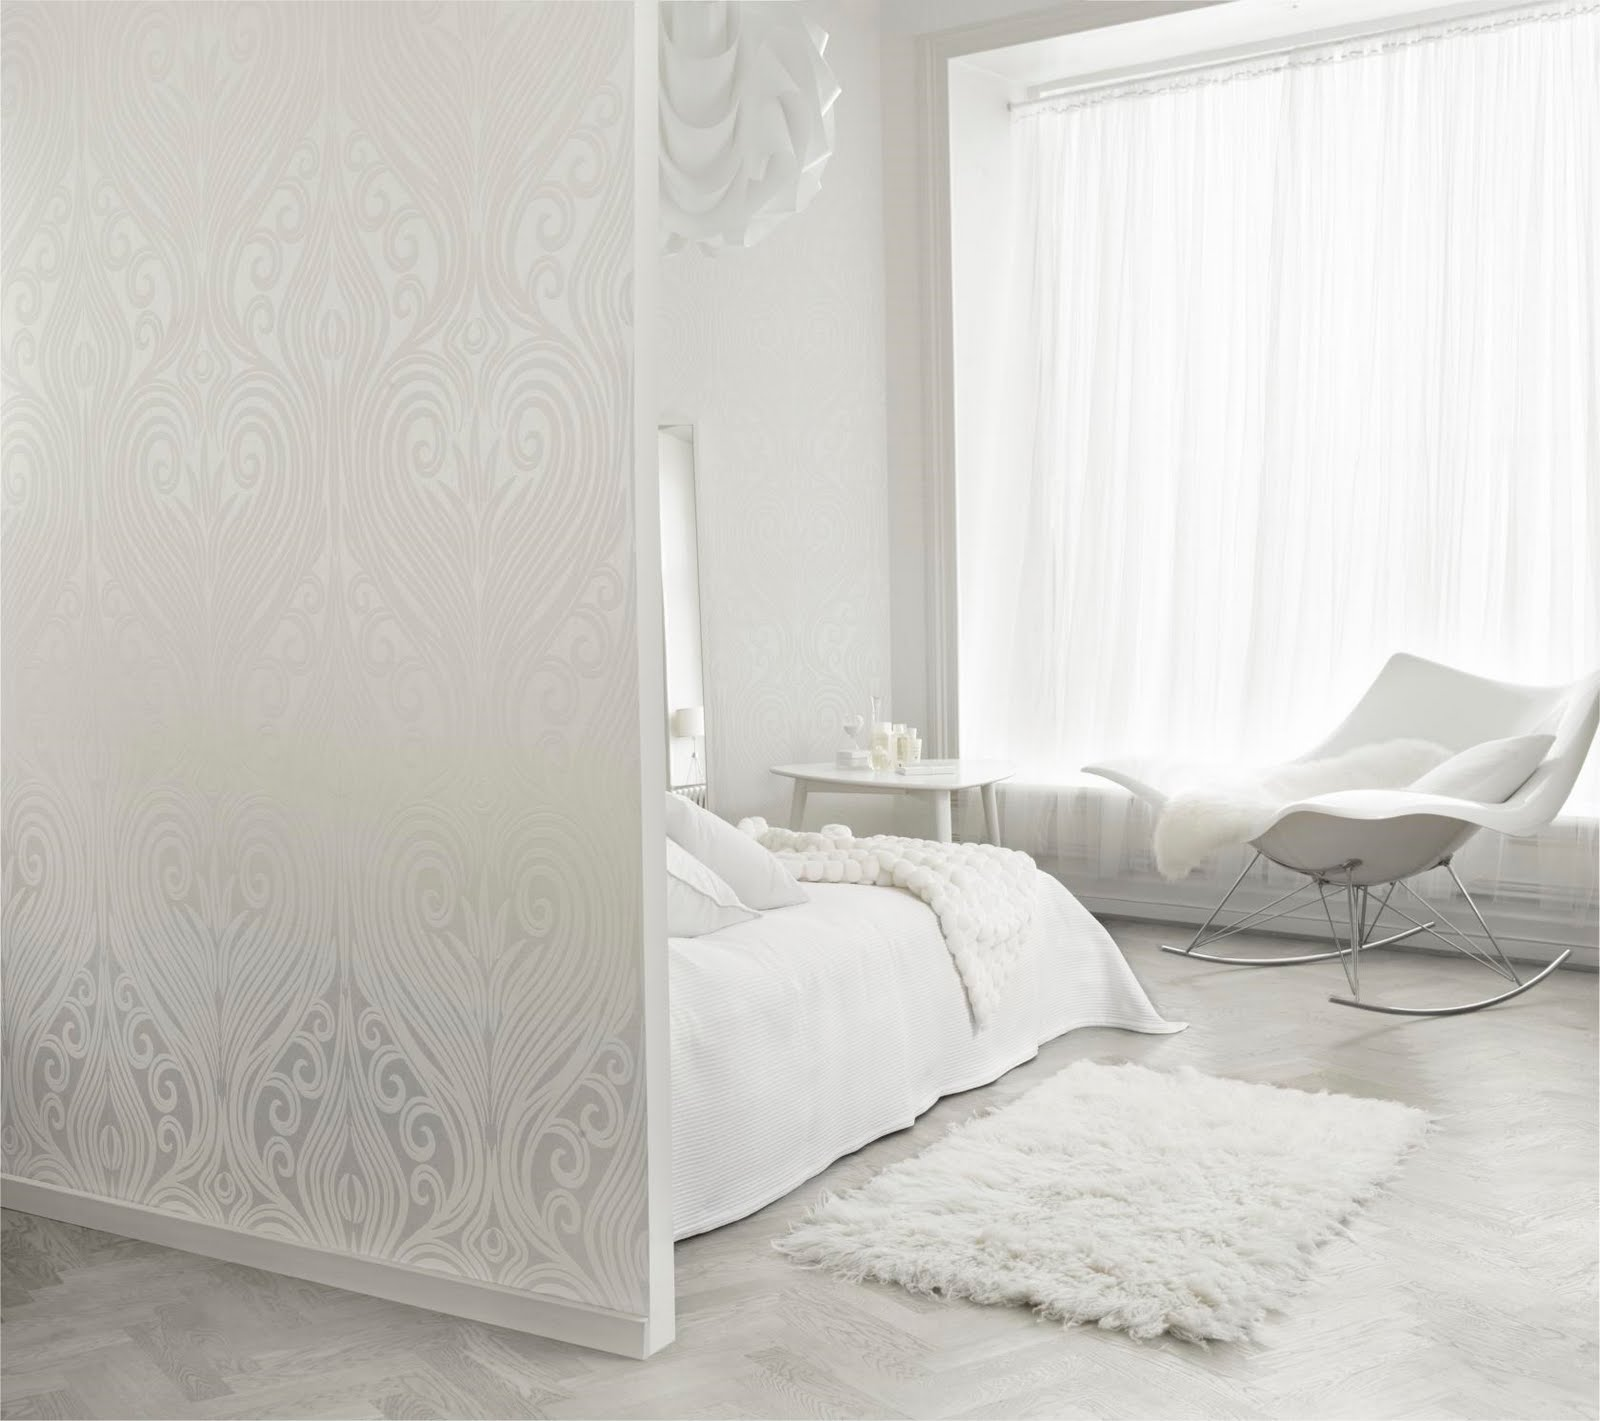 Cool Bedroom Wallpaper Bedroom Ideas White Coral Bedroom Color Schemes Luxury Boy Bedroom: Design Shimmer: White Walls